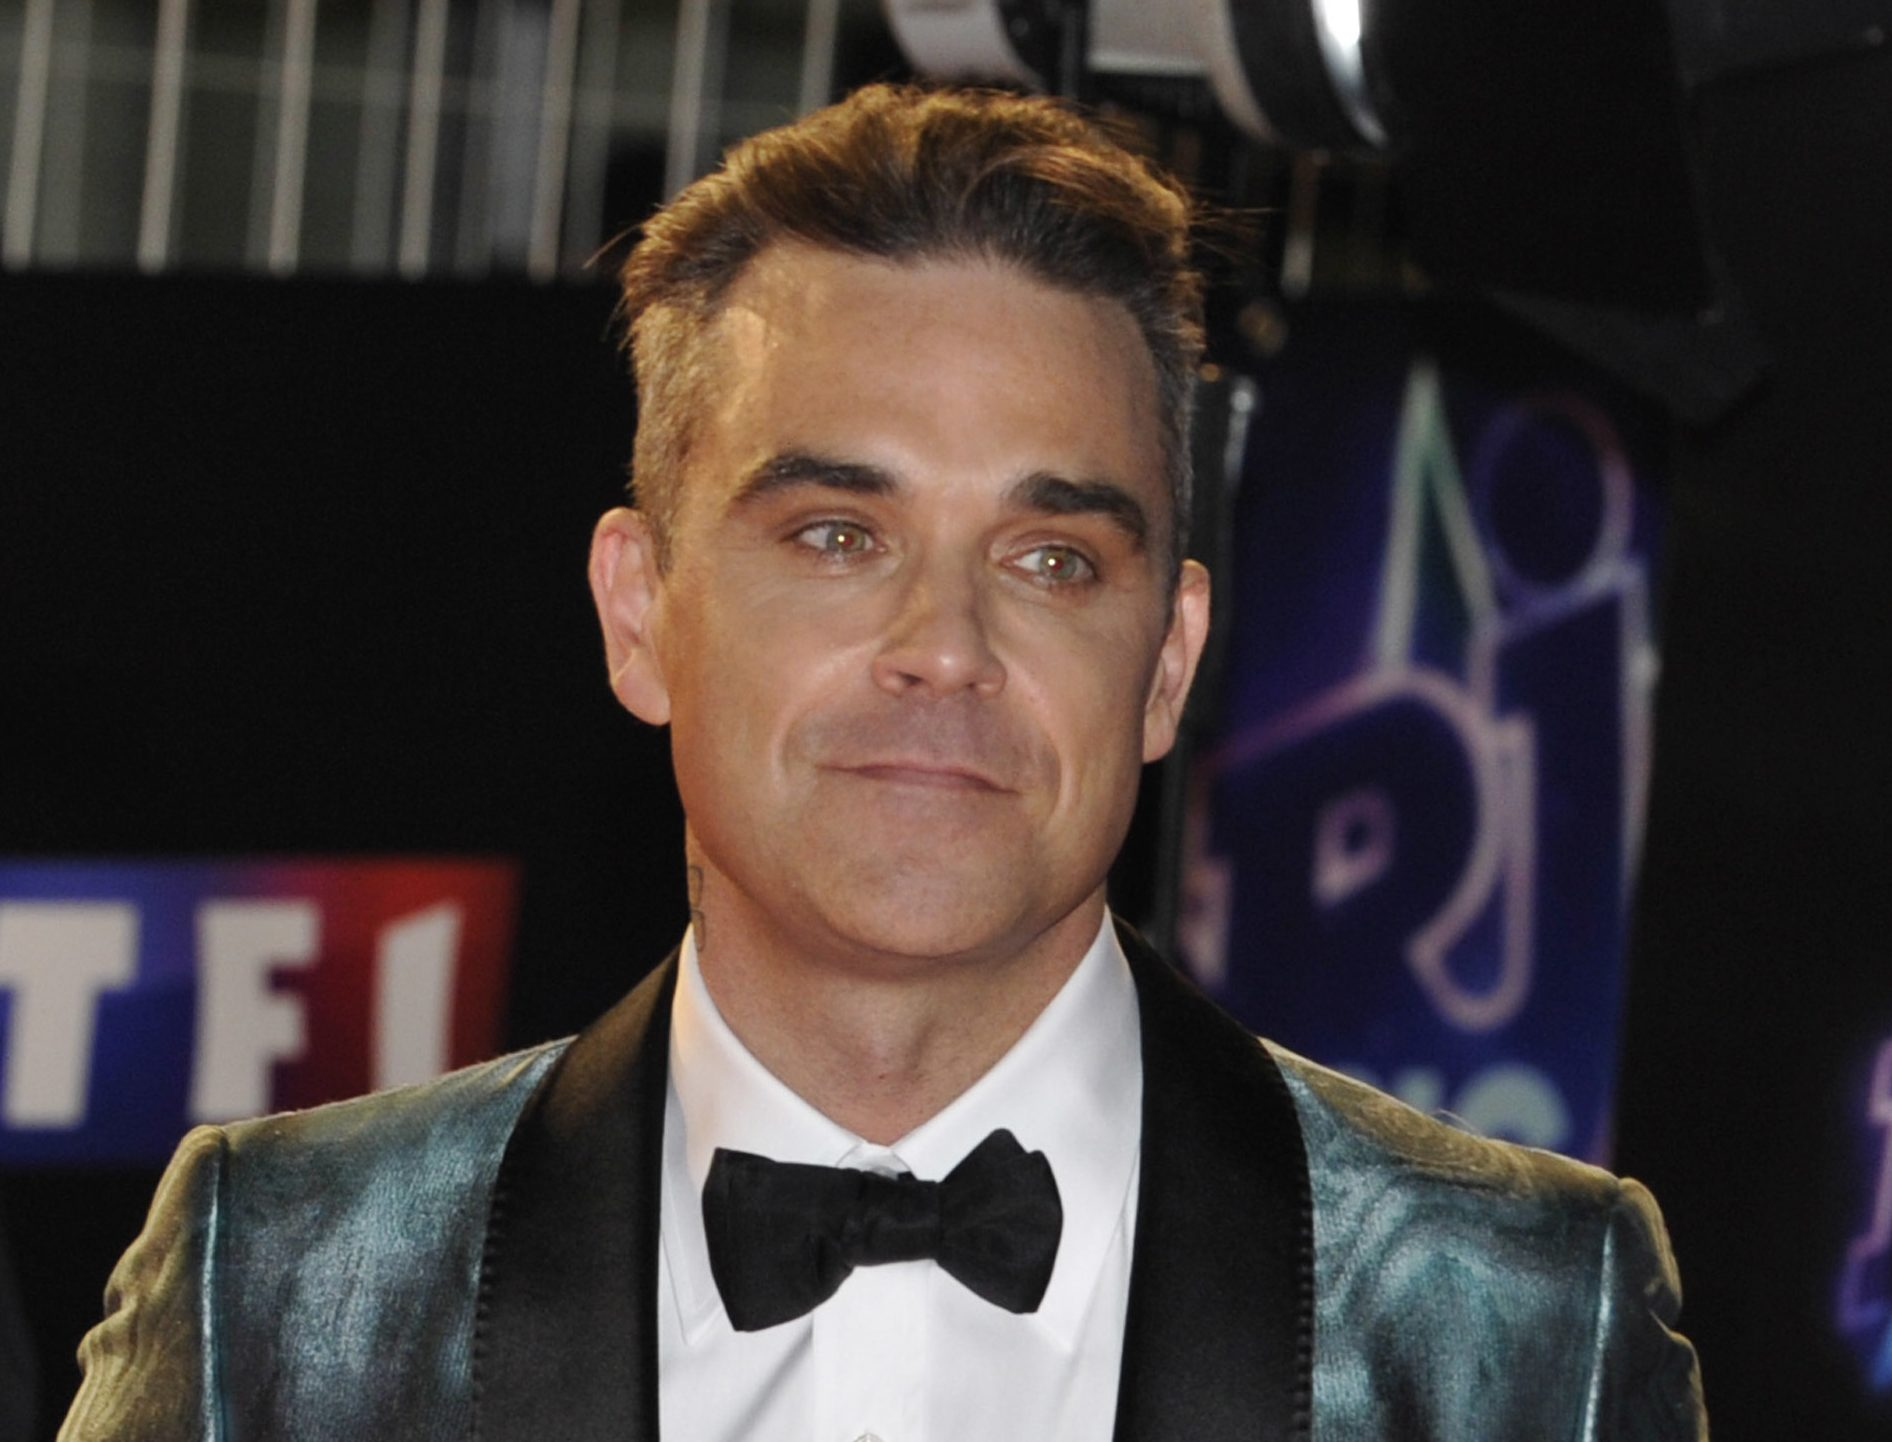 Robbie Williams gives interesting reason for his new body